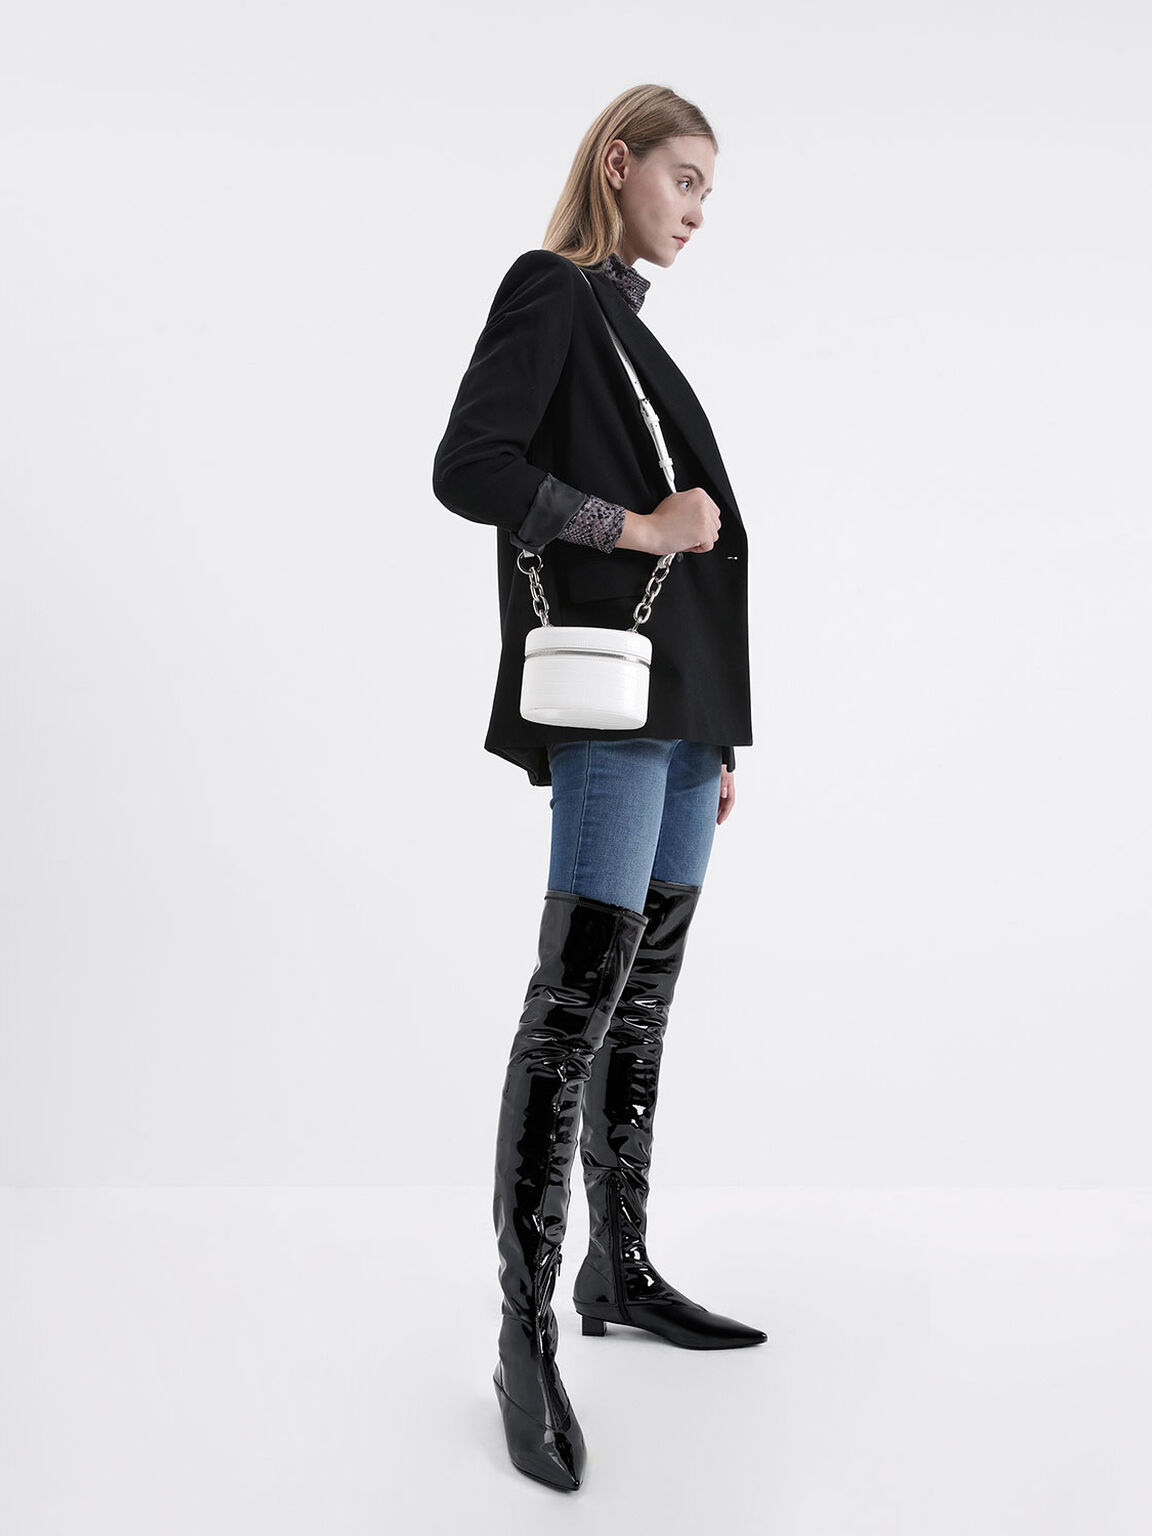 Thigh High Patent Boots, Black, hi-res